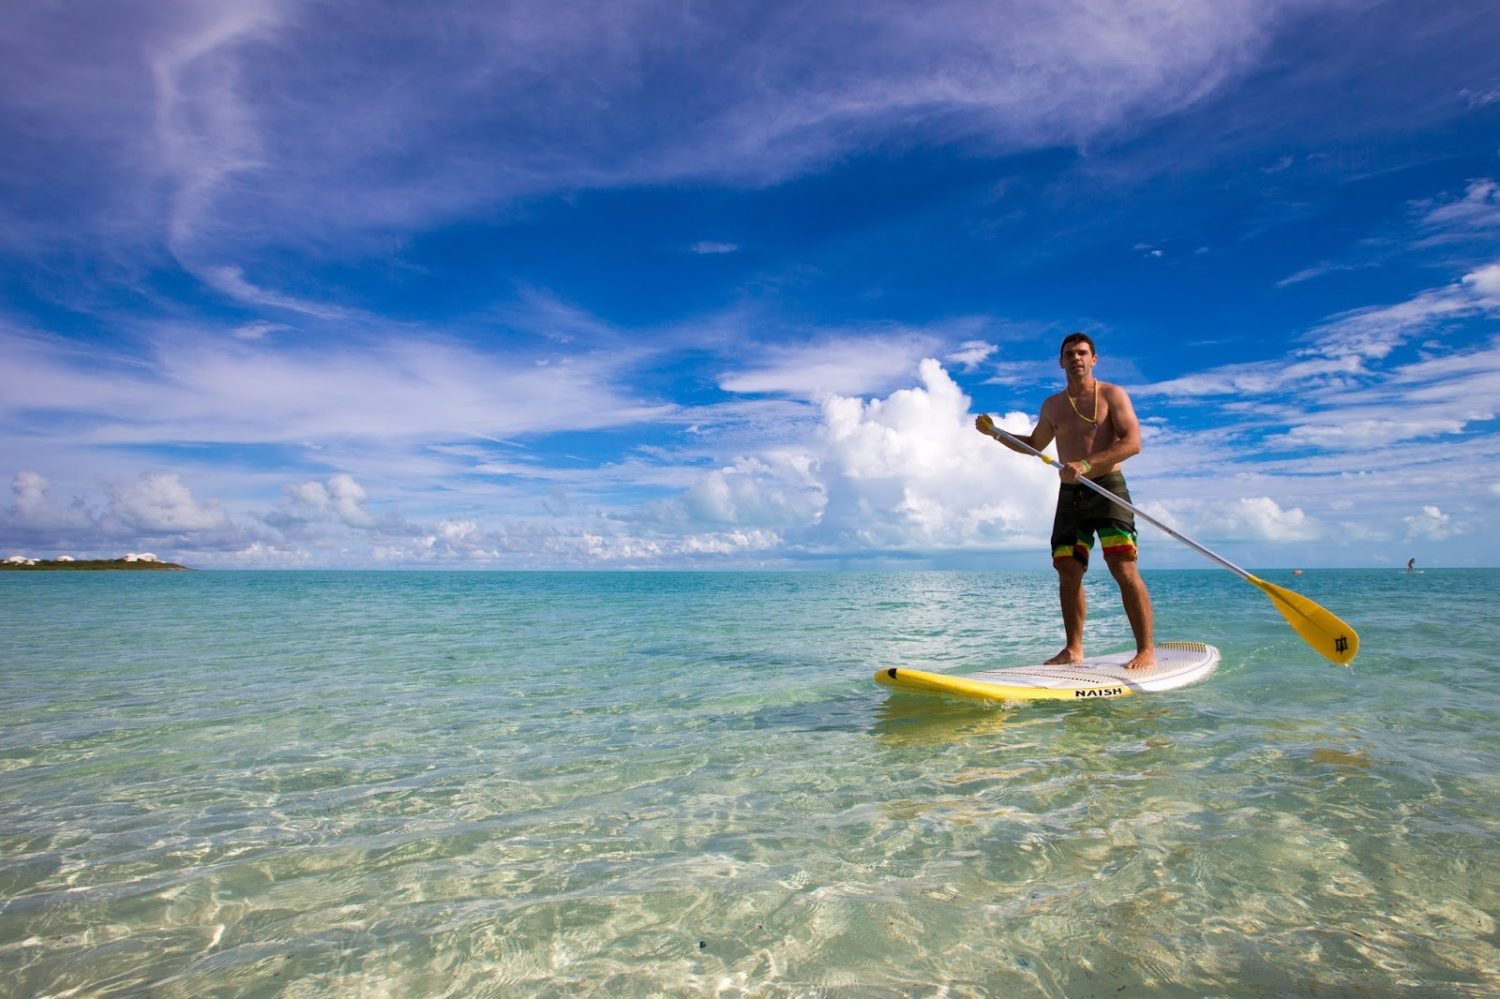 SUP Paddling in Turks and Caicos